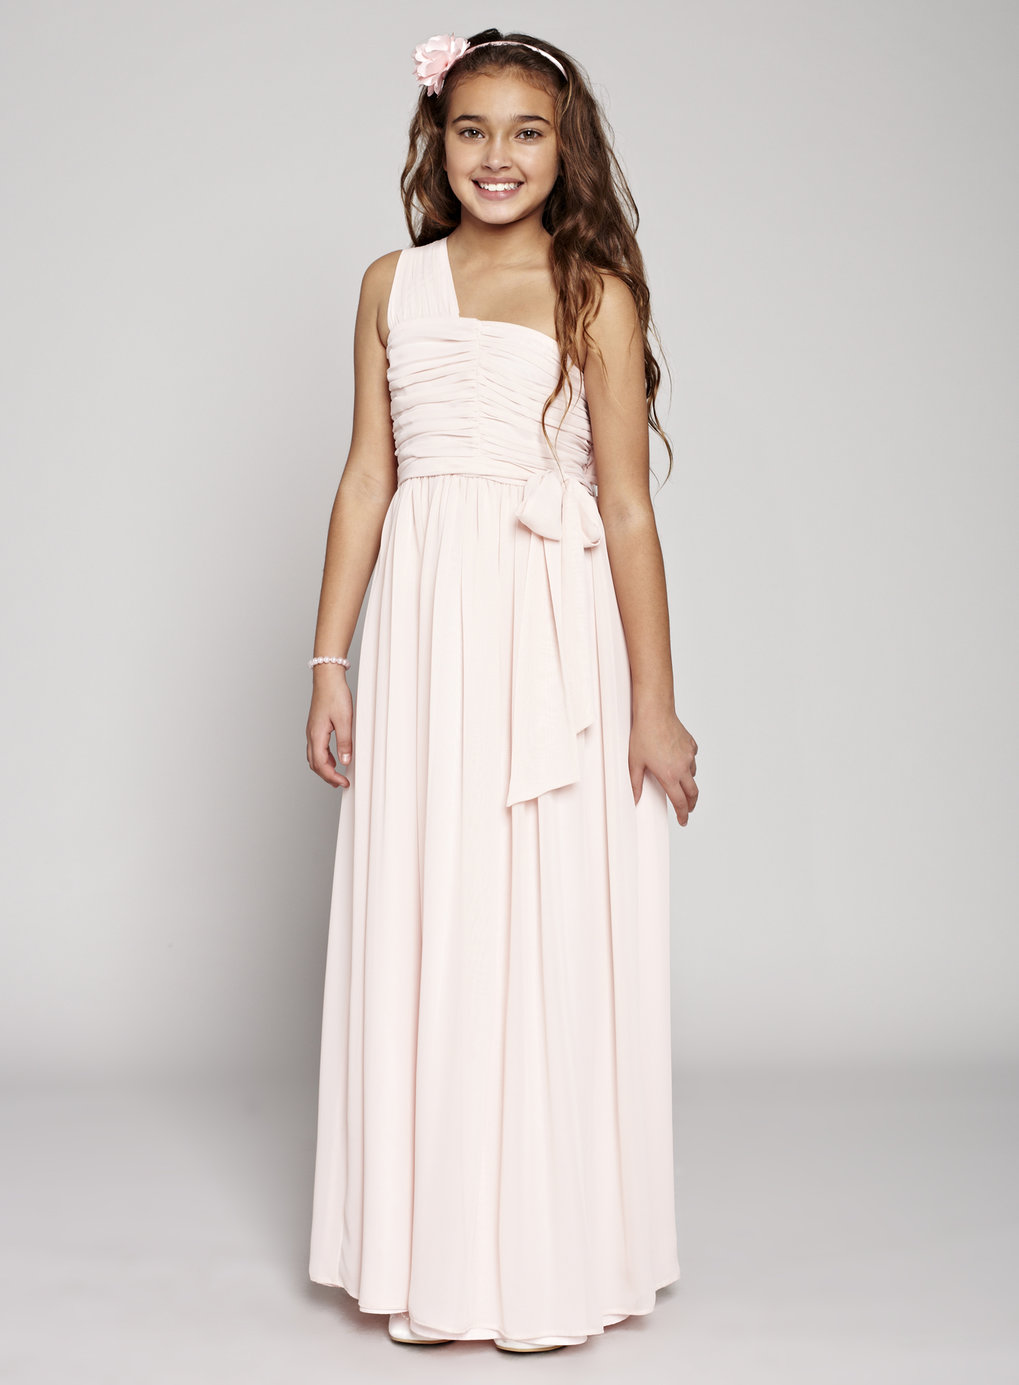 wedding dresses for teens photo - 1